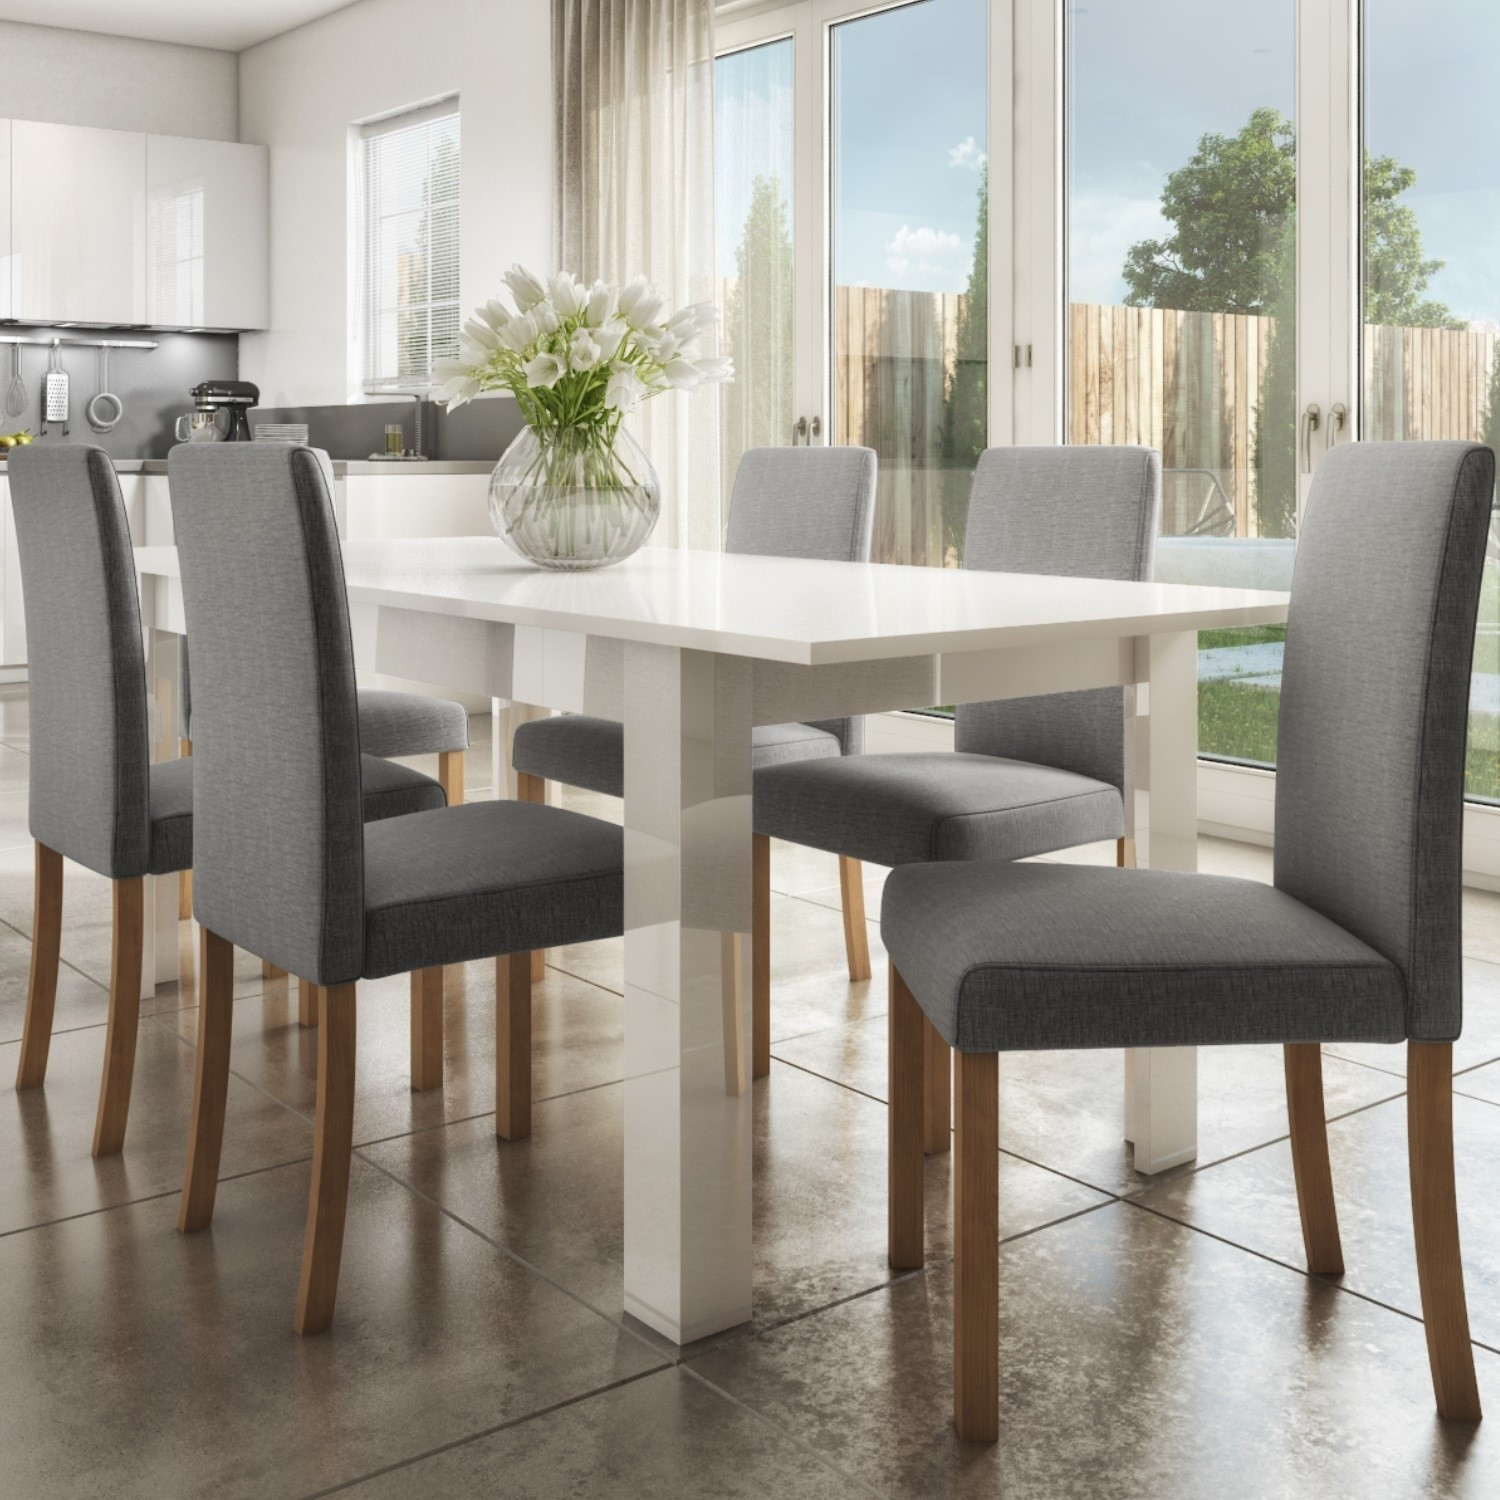 Peachy Extendable Dining Table In White High Gloss With 6 Grey Chairs Vivienne New Haven Ncnpc Chair Design For Home Ncnpcorg